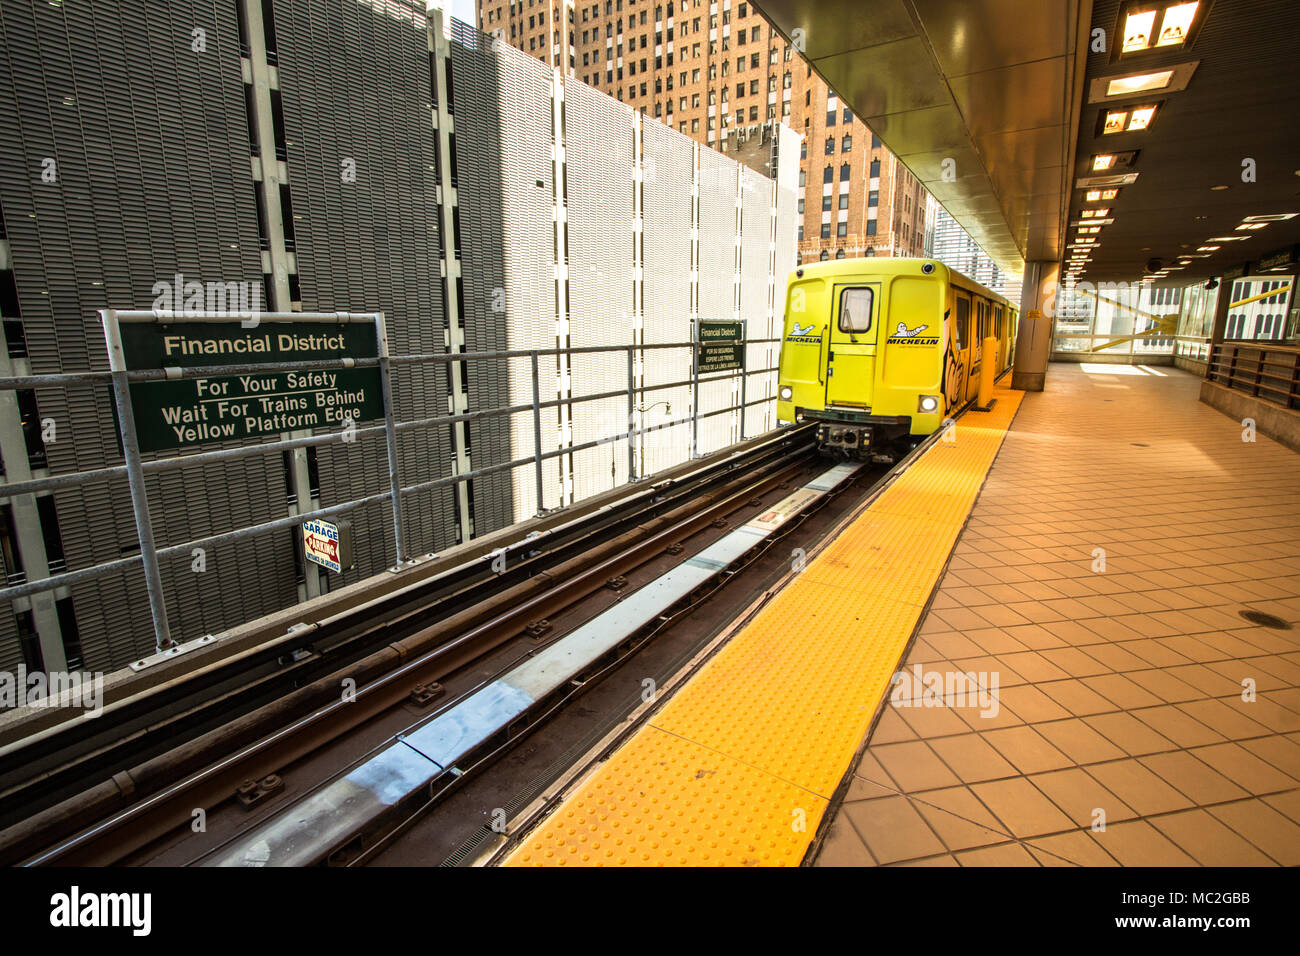 The Detroit People Mover leaves the station in downtown Detroit. The People Mover is a mass transit rail system that serves the downtown area. - Stock Image